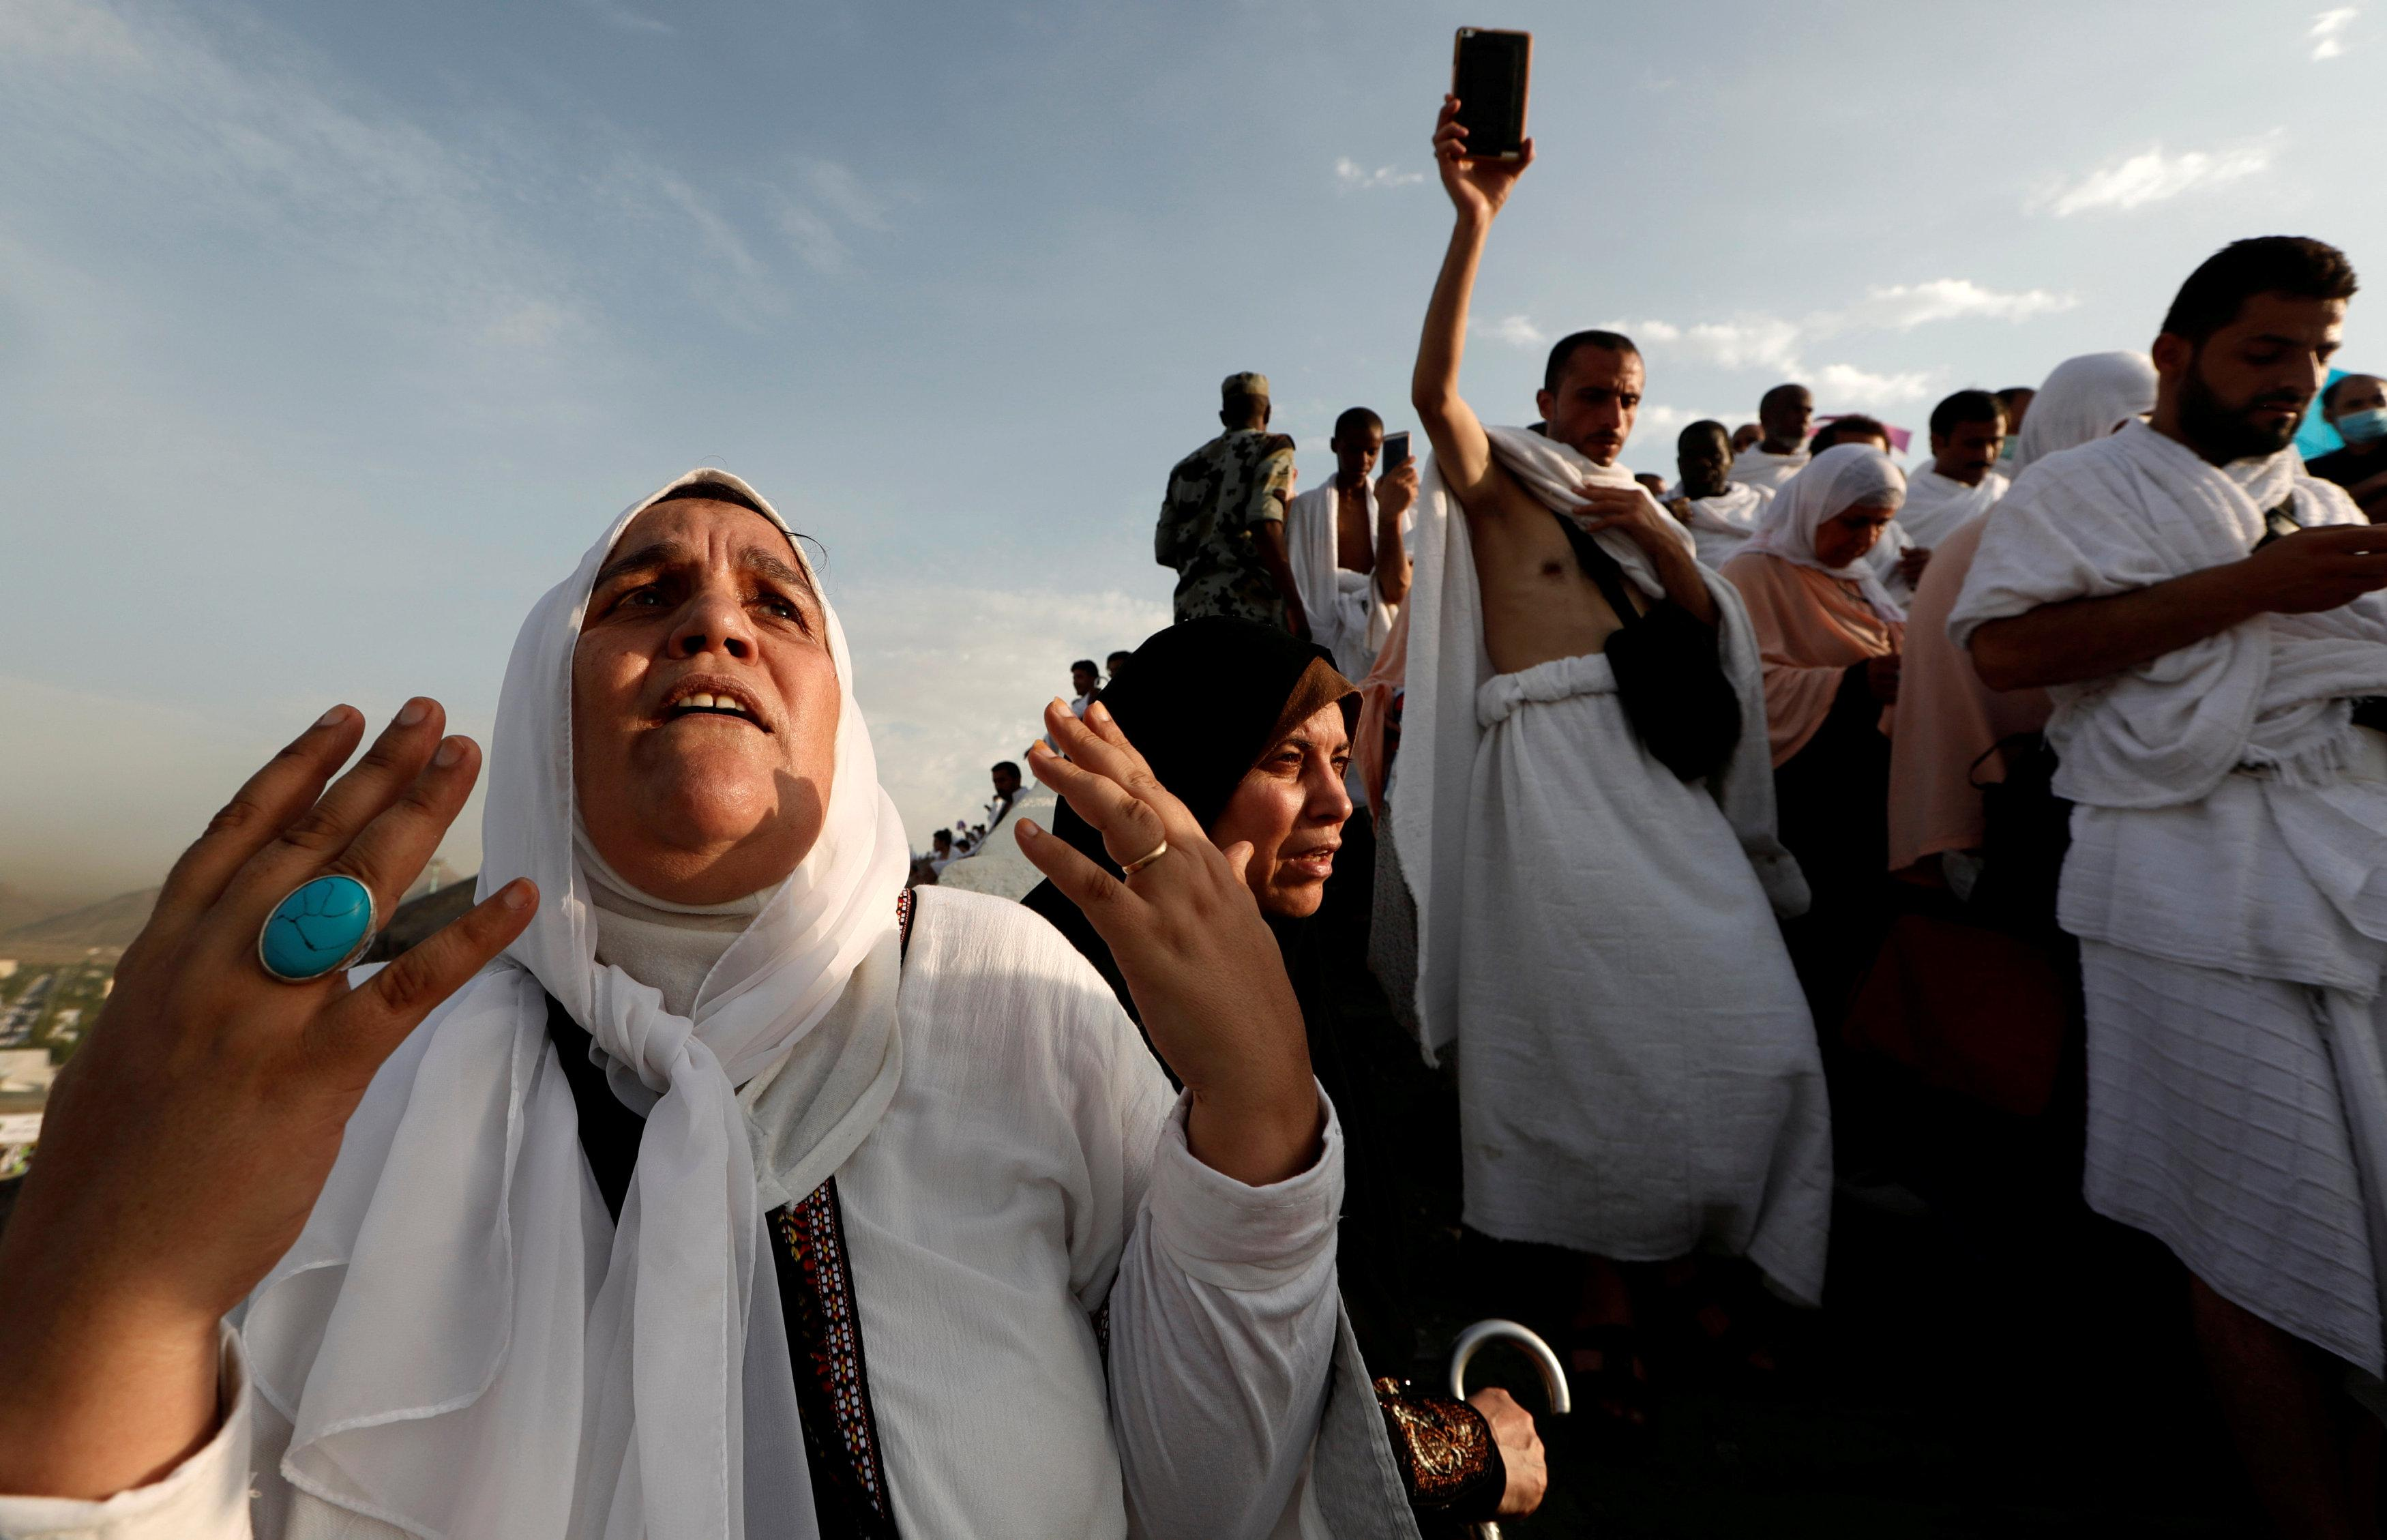 A Muslim pilgrim prays as she gather with others on Mount Mercy on the plains of Arafat during the annual haj pilgrimage, outside the holy city of Mecca, Saudi Arabia August 20, 2018. Zohra Bensemra